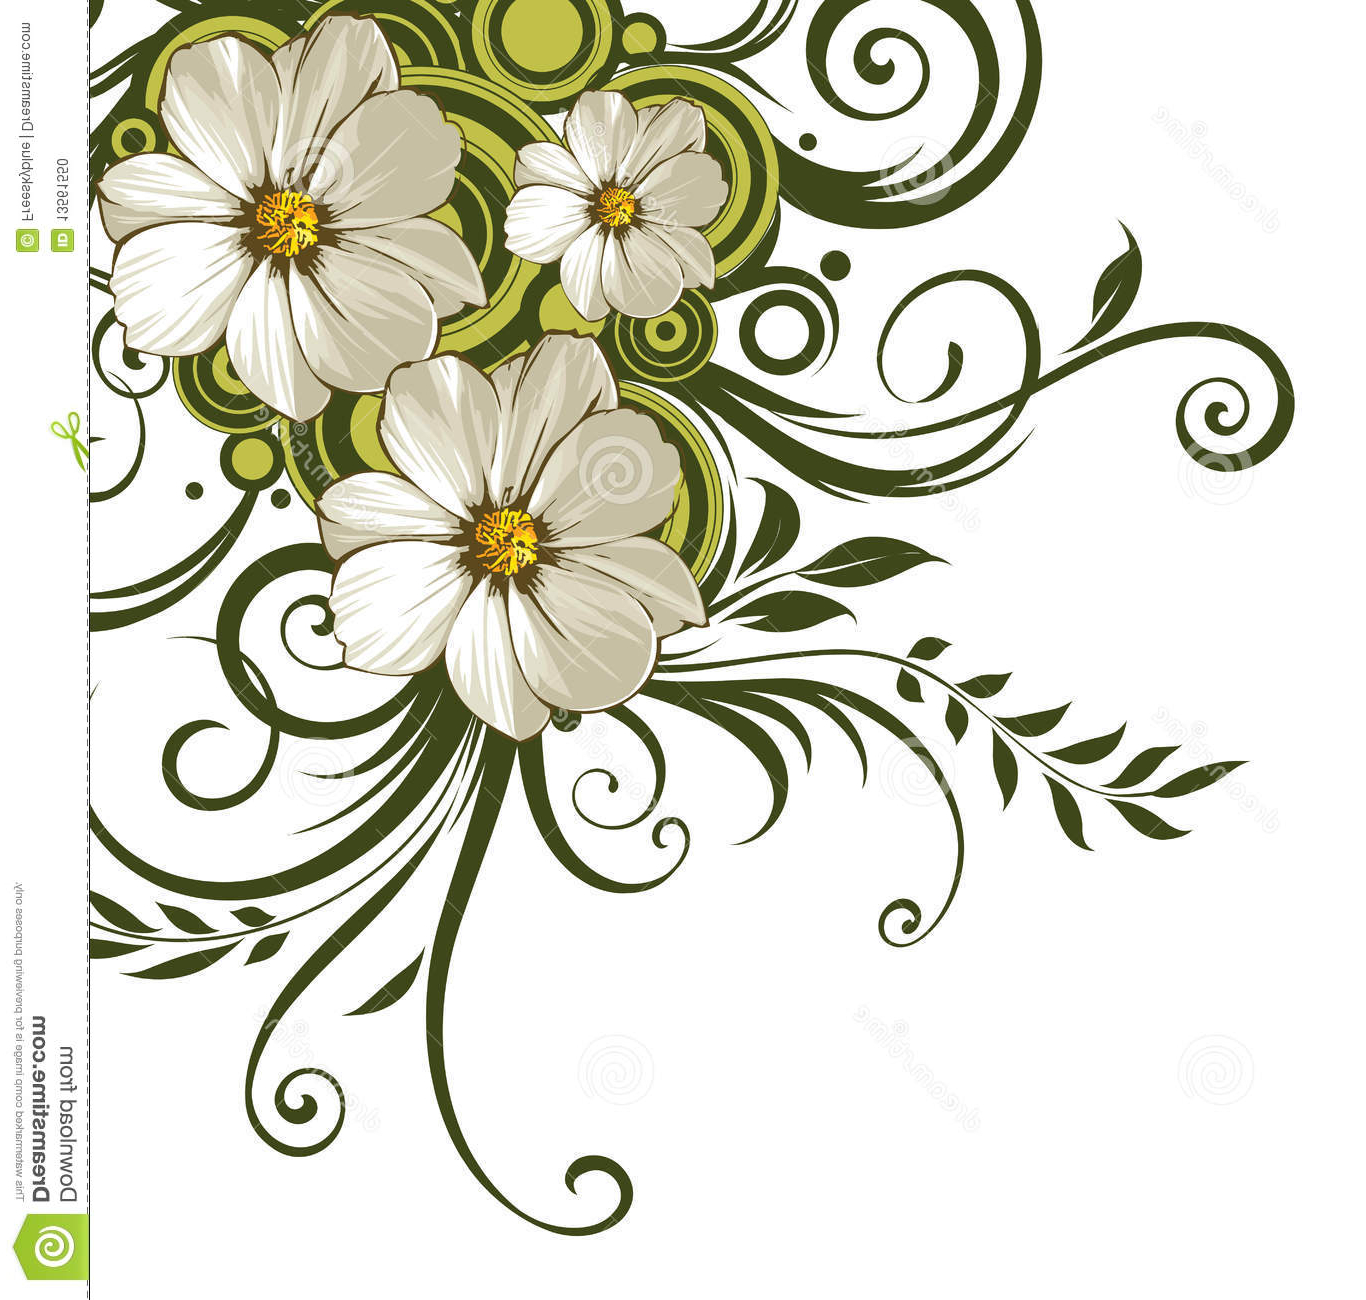 Daisies Flowers Drawing At Getdrawings Free For Personal Use